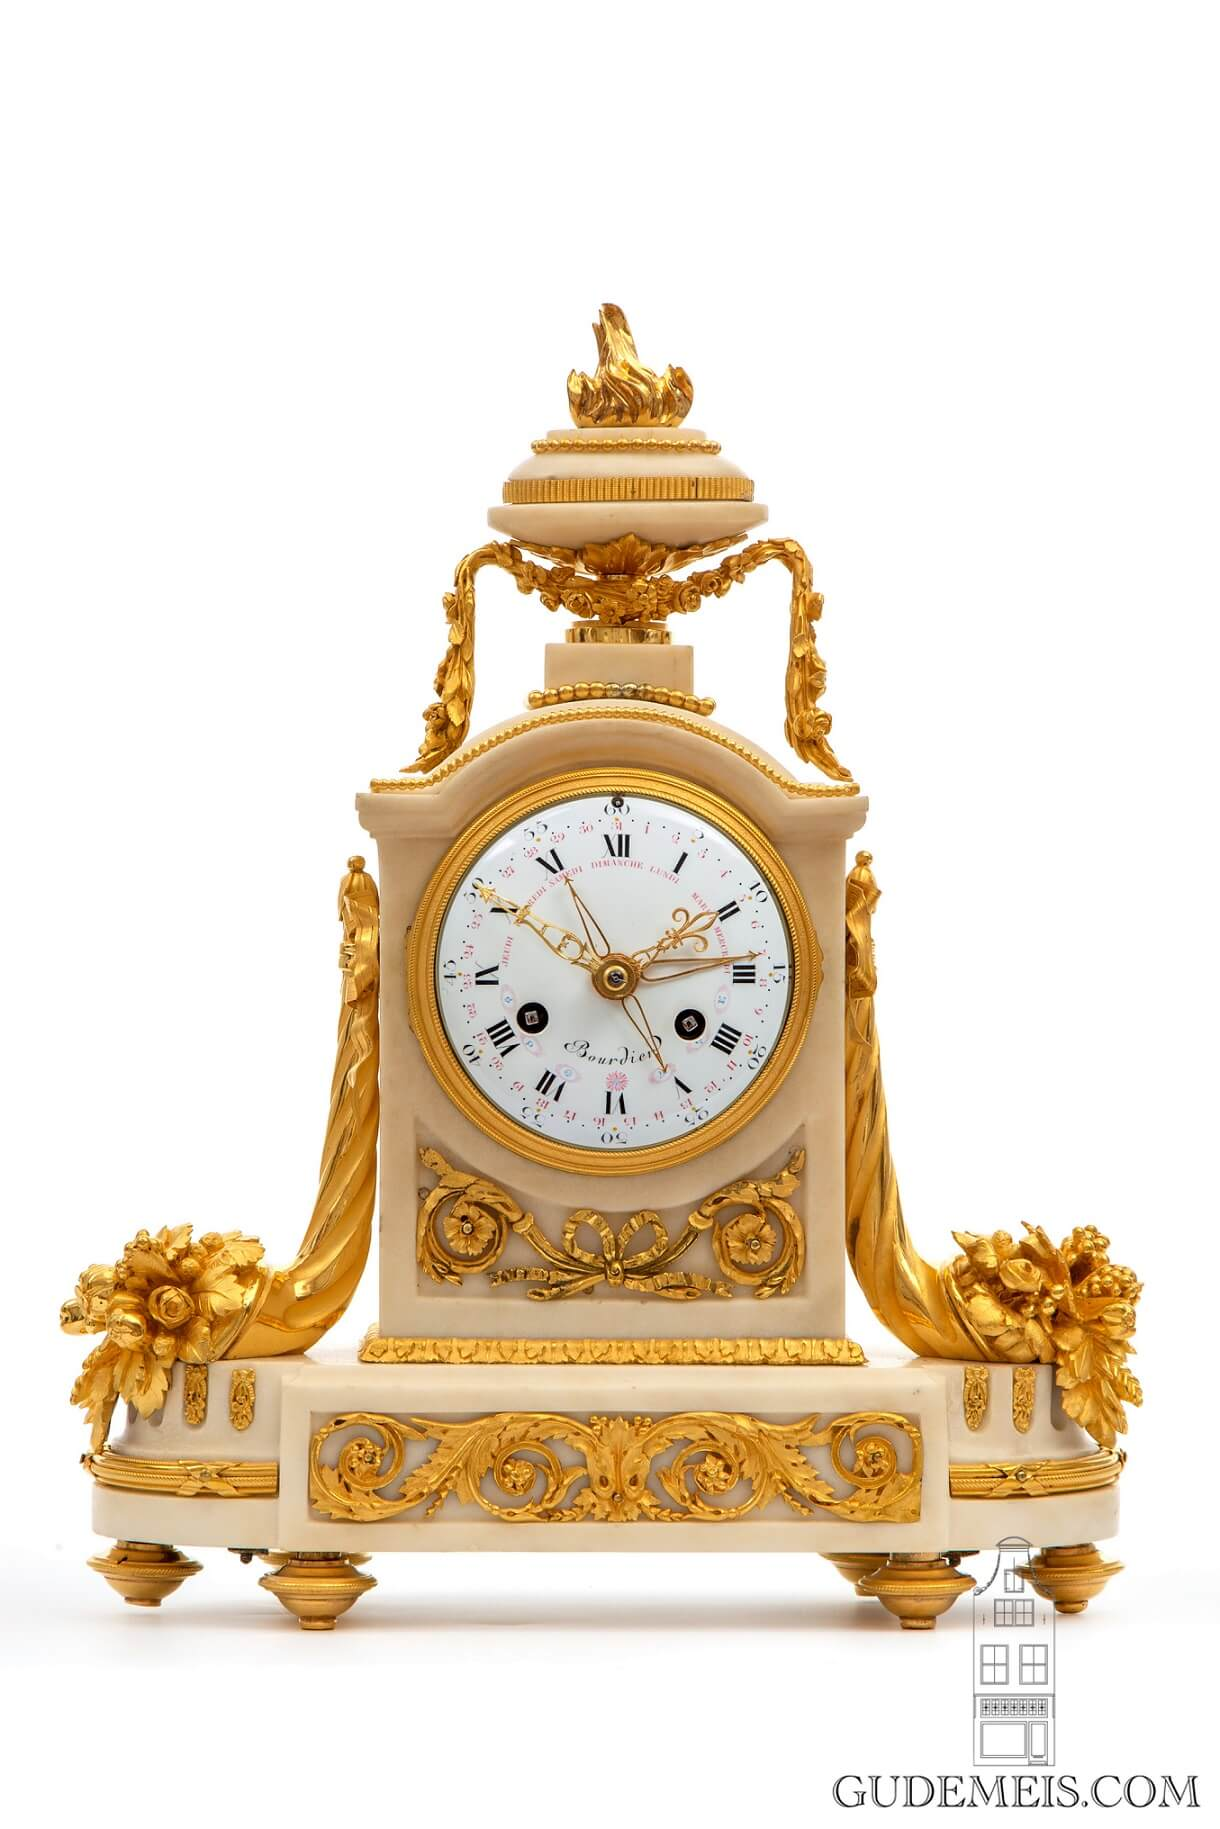 French-Louis XVI-borne-gilt-bronze-calendar-date-day-antique-mantel-clock-Bourdier-Paris-striking